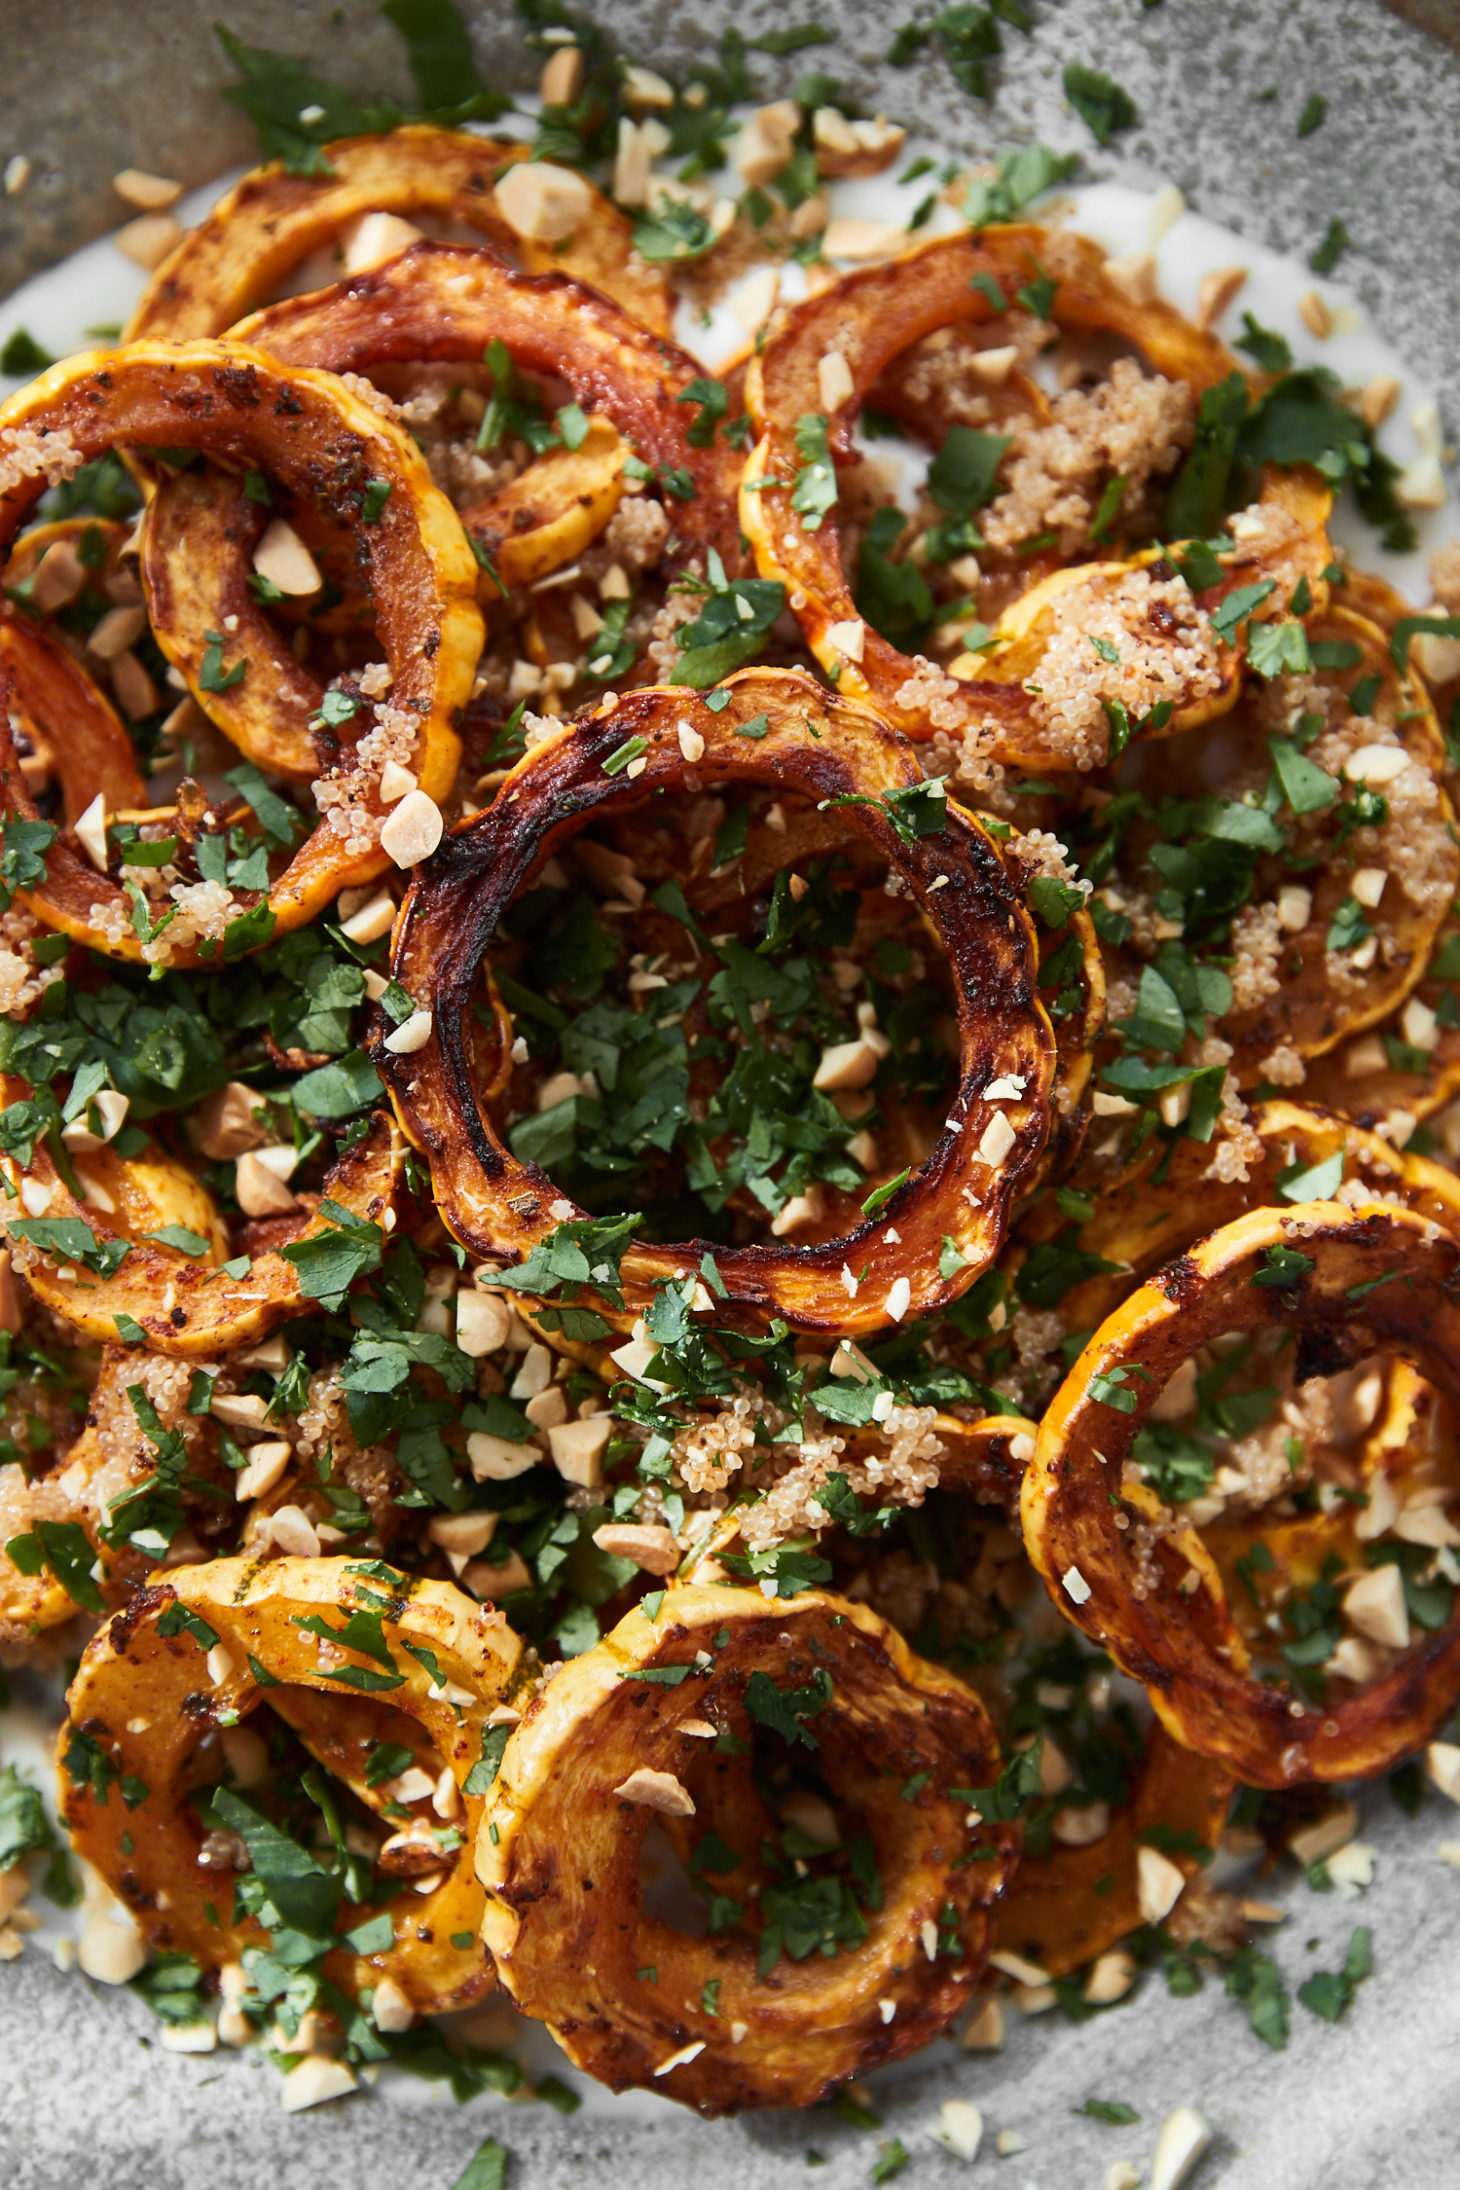 Close-up photograph of roasted delicata squash on top of yogurt sauce and topped with leaves of cilantro.